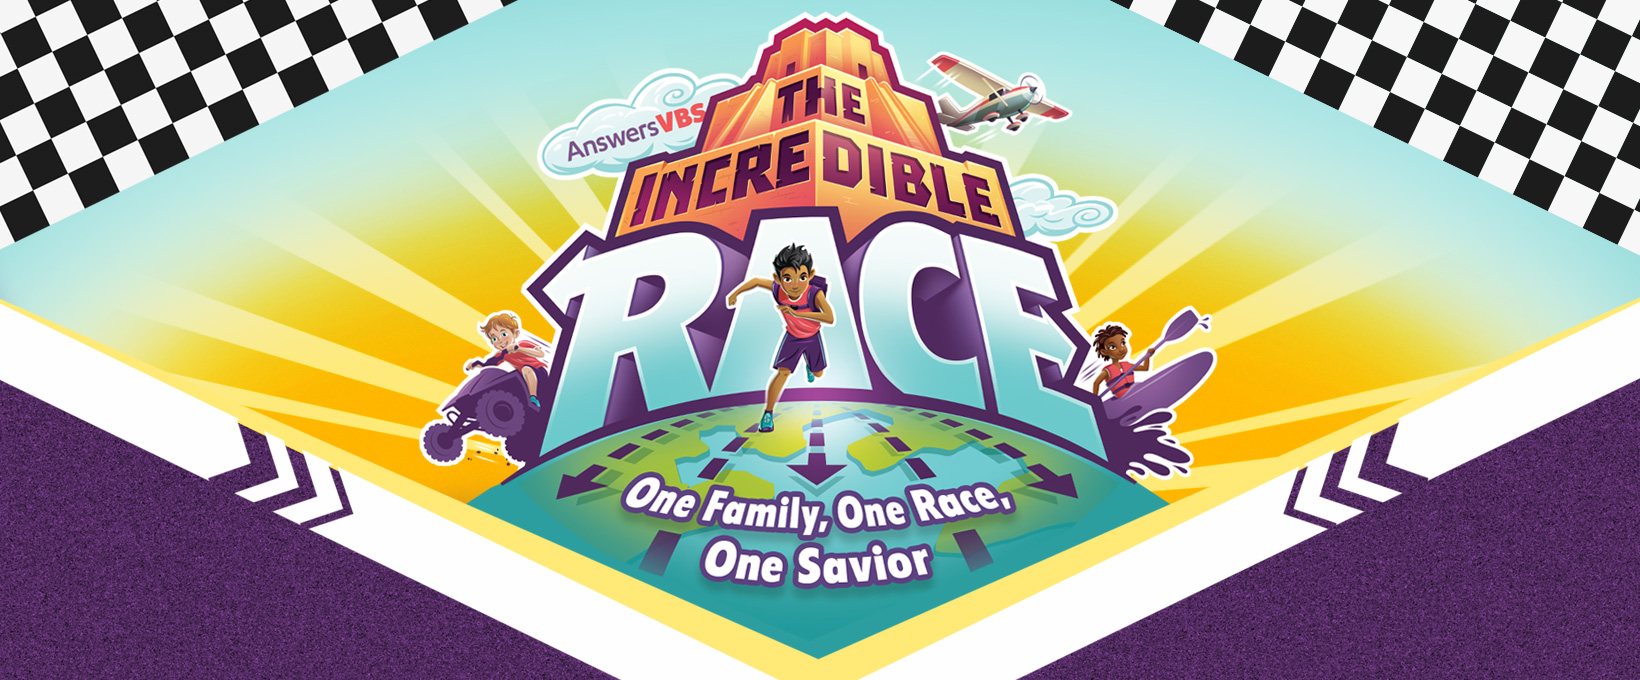 VBS Registration is LIVE! Register your child/children at    Morningside.org/vbs     It's a Vacation Bible School like no other!   Kids will race from continent to continent uncovering clues and attempting challenges as they fill their score cards.  They'll also discover that, no matter where we live, what shade of skin we have, or what language we speak, we are all part of the same race— the human race —and all part of the same family from Adam and Eve.  As they examine the events surrounding the tower of Babel, kids will learn that God is calling people from every tribe and nation through his Son, Jesus Christ, the Savior of the world. And that he wants us to share this good news in kindness and love with our neighbors nearby and far away.  Join  The Incredible Race   Sunday through Thursday, June 9-13 from 6:00-8:15pm  and experience God's love for every tribe, language, and nation!